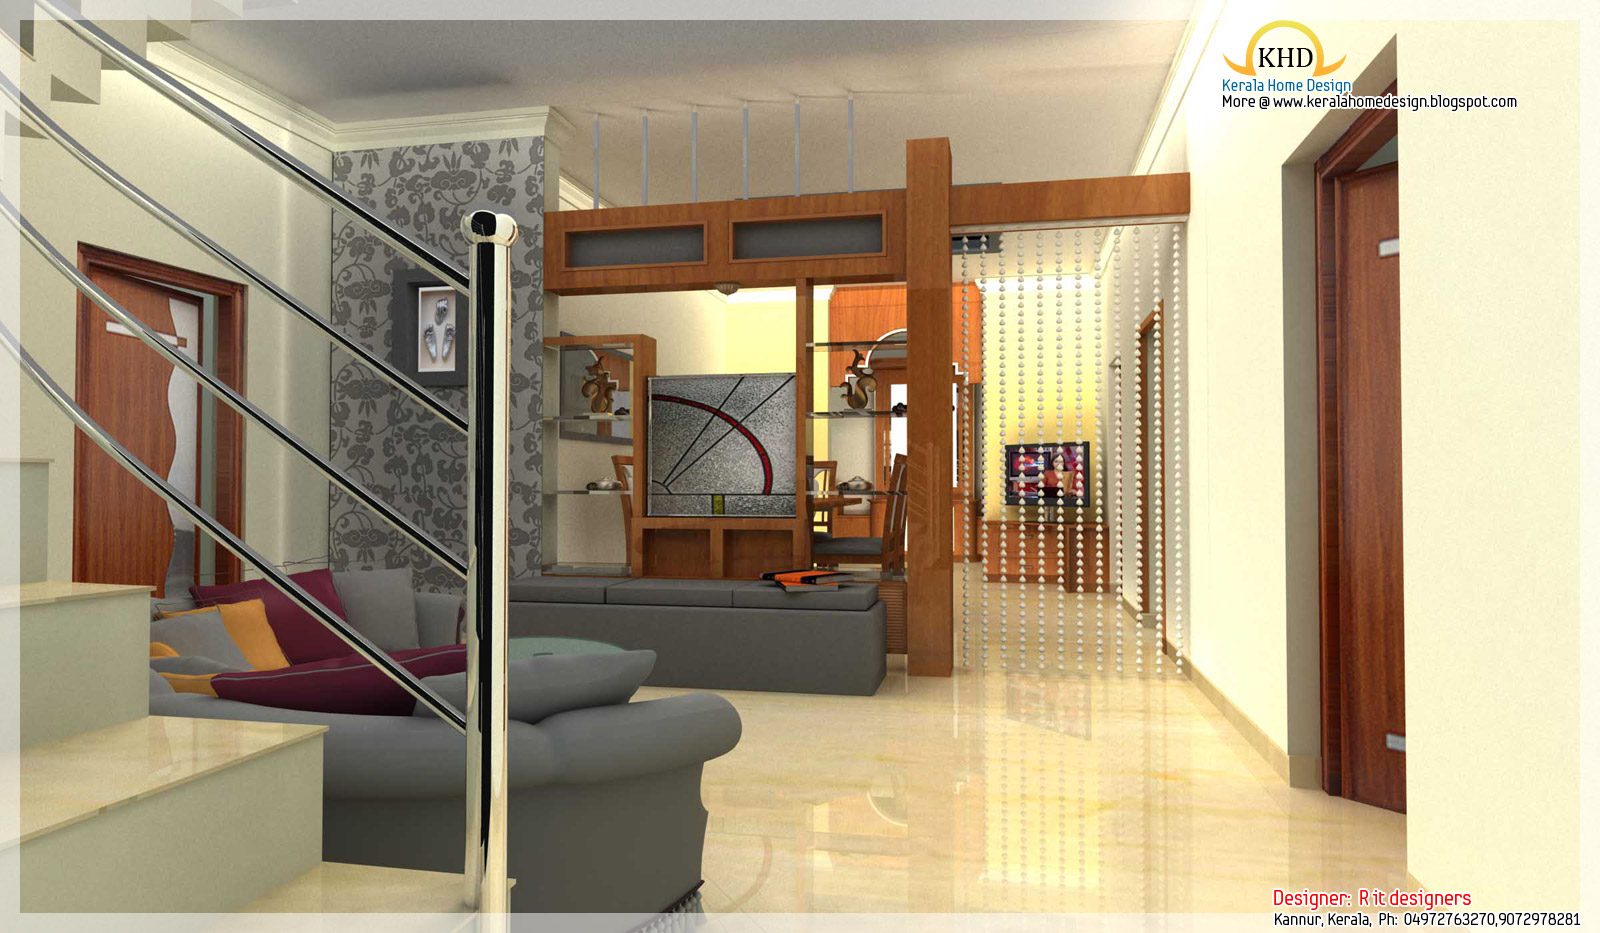 Home interior design kerala style Home interior wardrobe design